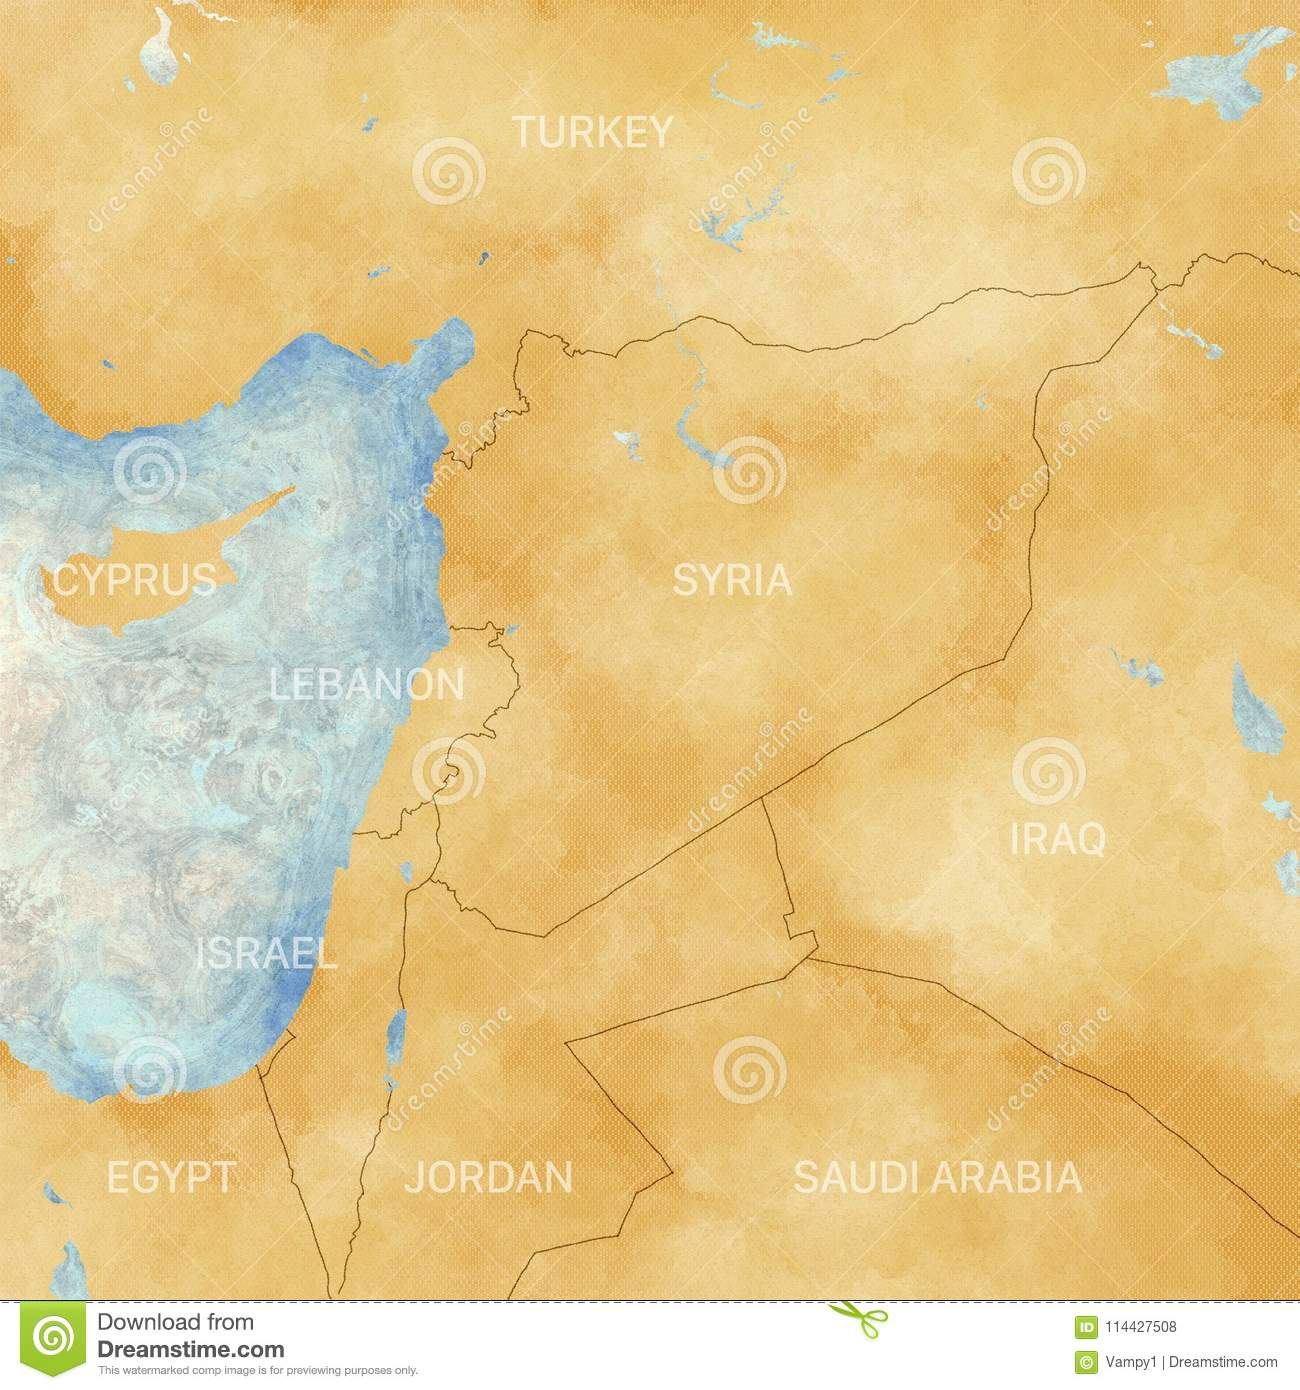 Map Of Syria And Borders, Physical Map Middle East, Arabian